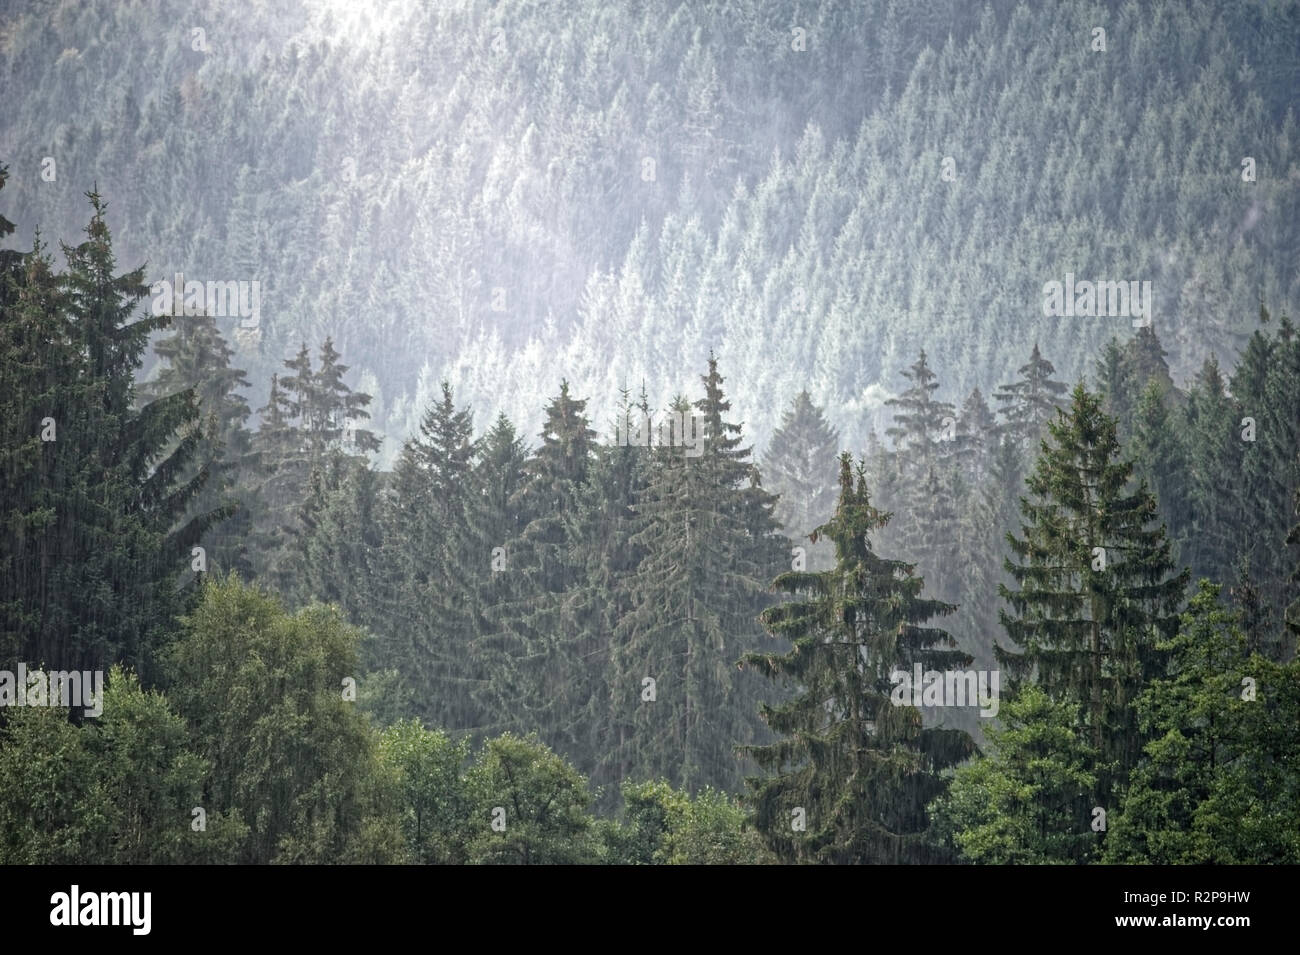 Misty landscape in Brocken,Harz,Germany.Brocken im Nebel und Regen,Harz. Stock Photo